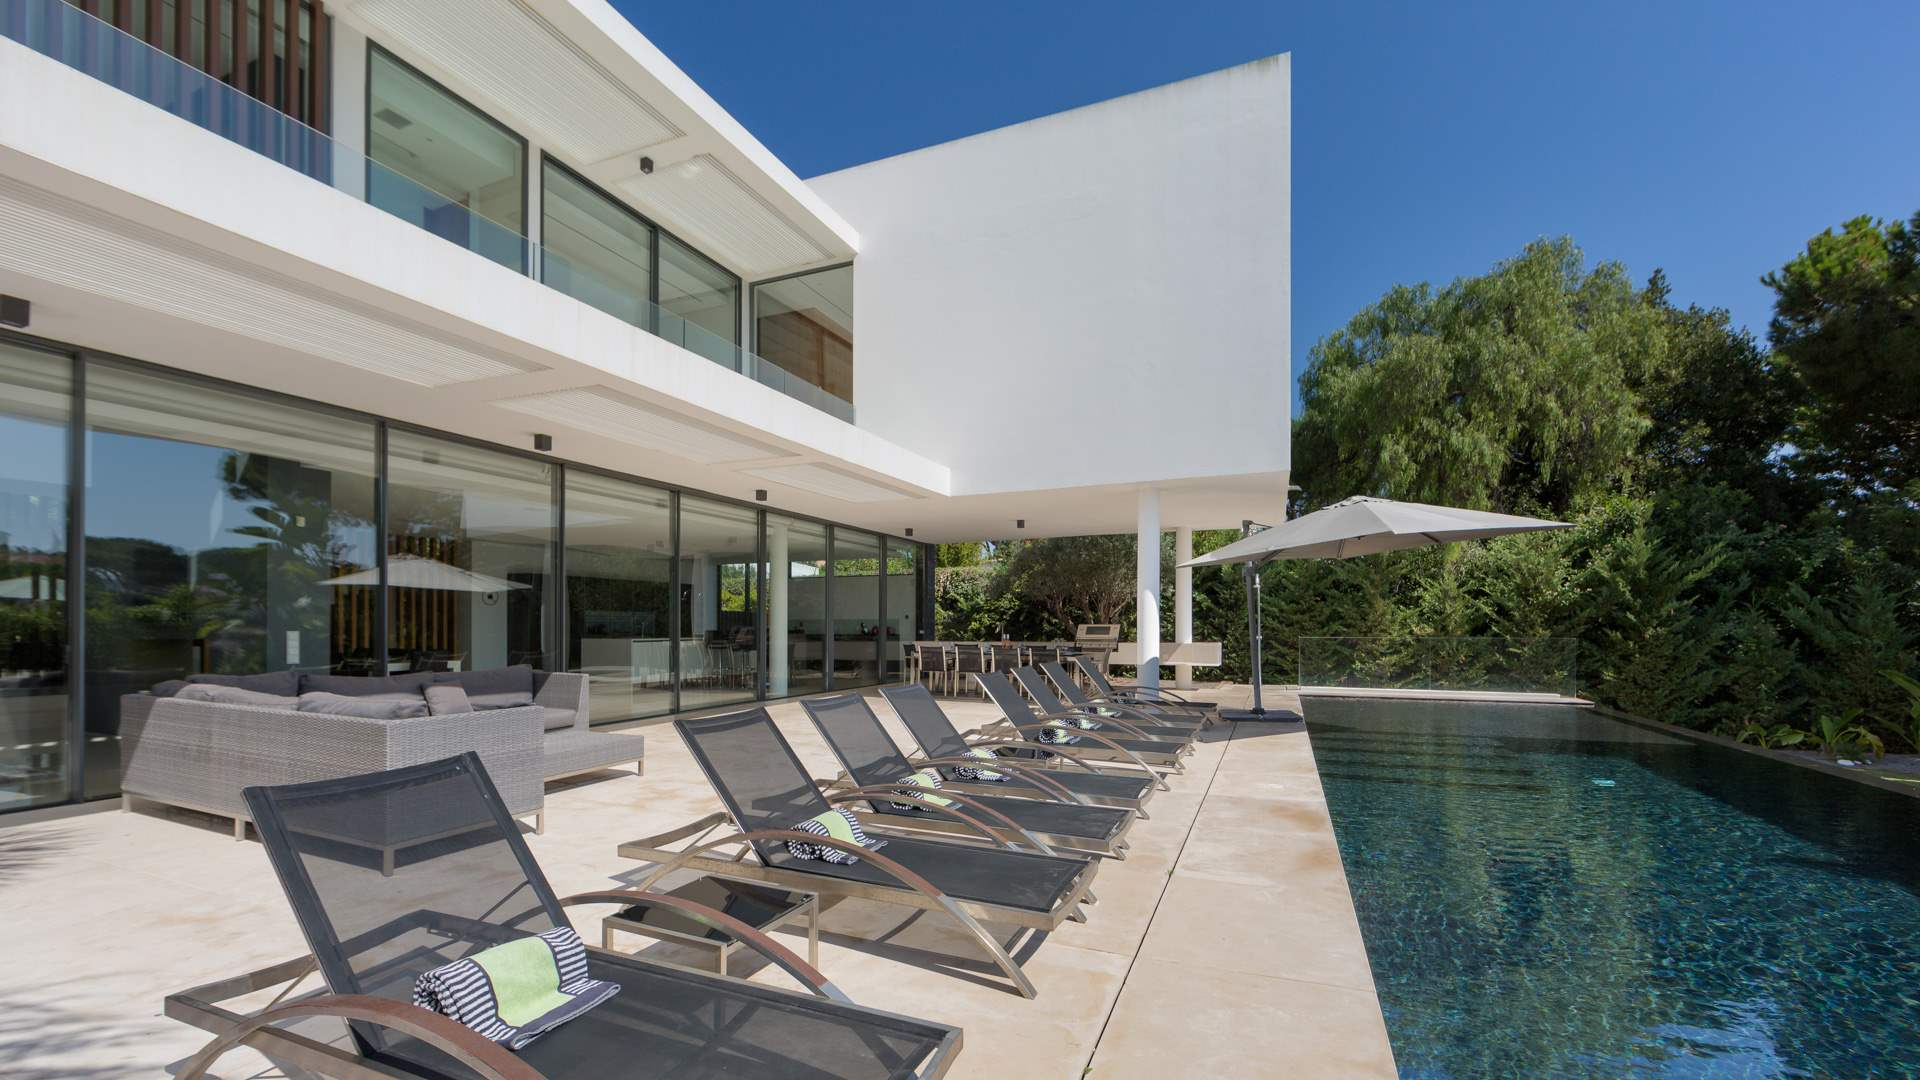 Villa Felicity, 4 bedroom villa in Vale do Lobo, Algarve Photo #11